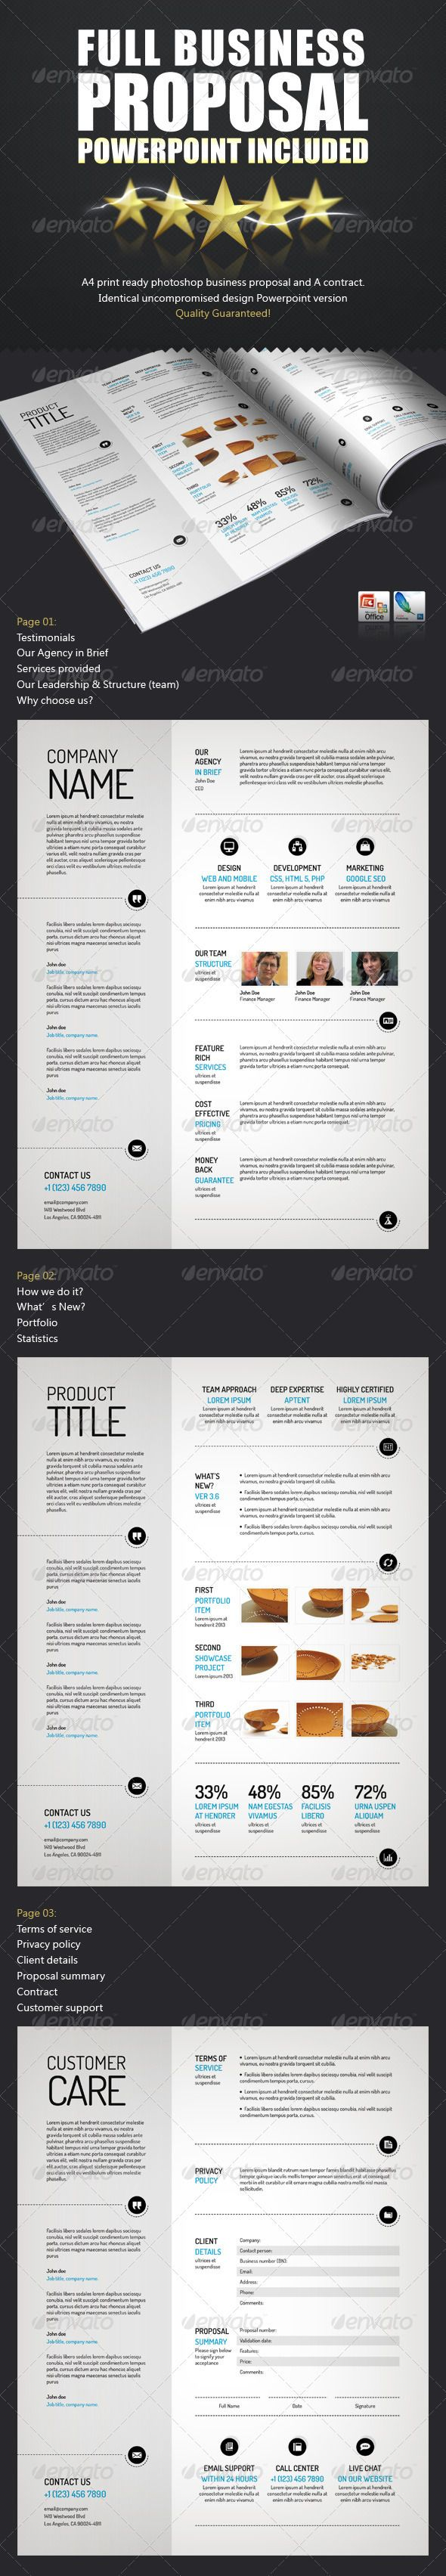 Spacious Business Proposal Template - PPTX + PSD — Photoshop PSD #proposal…